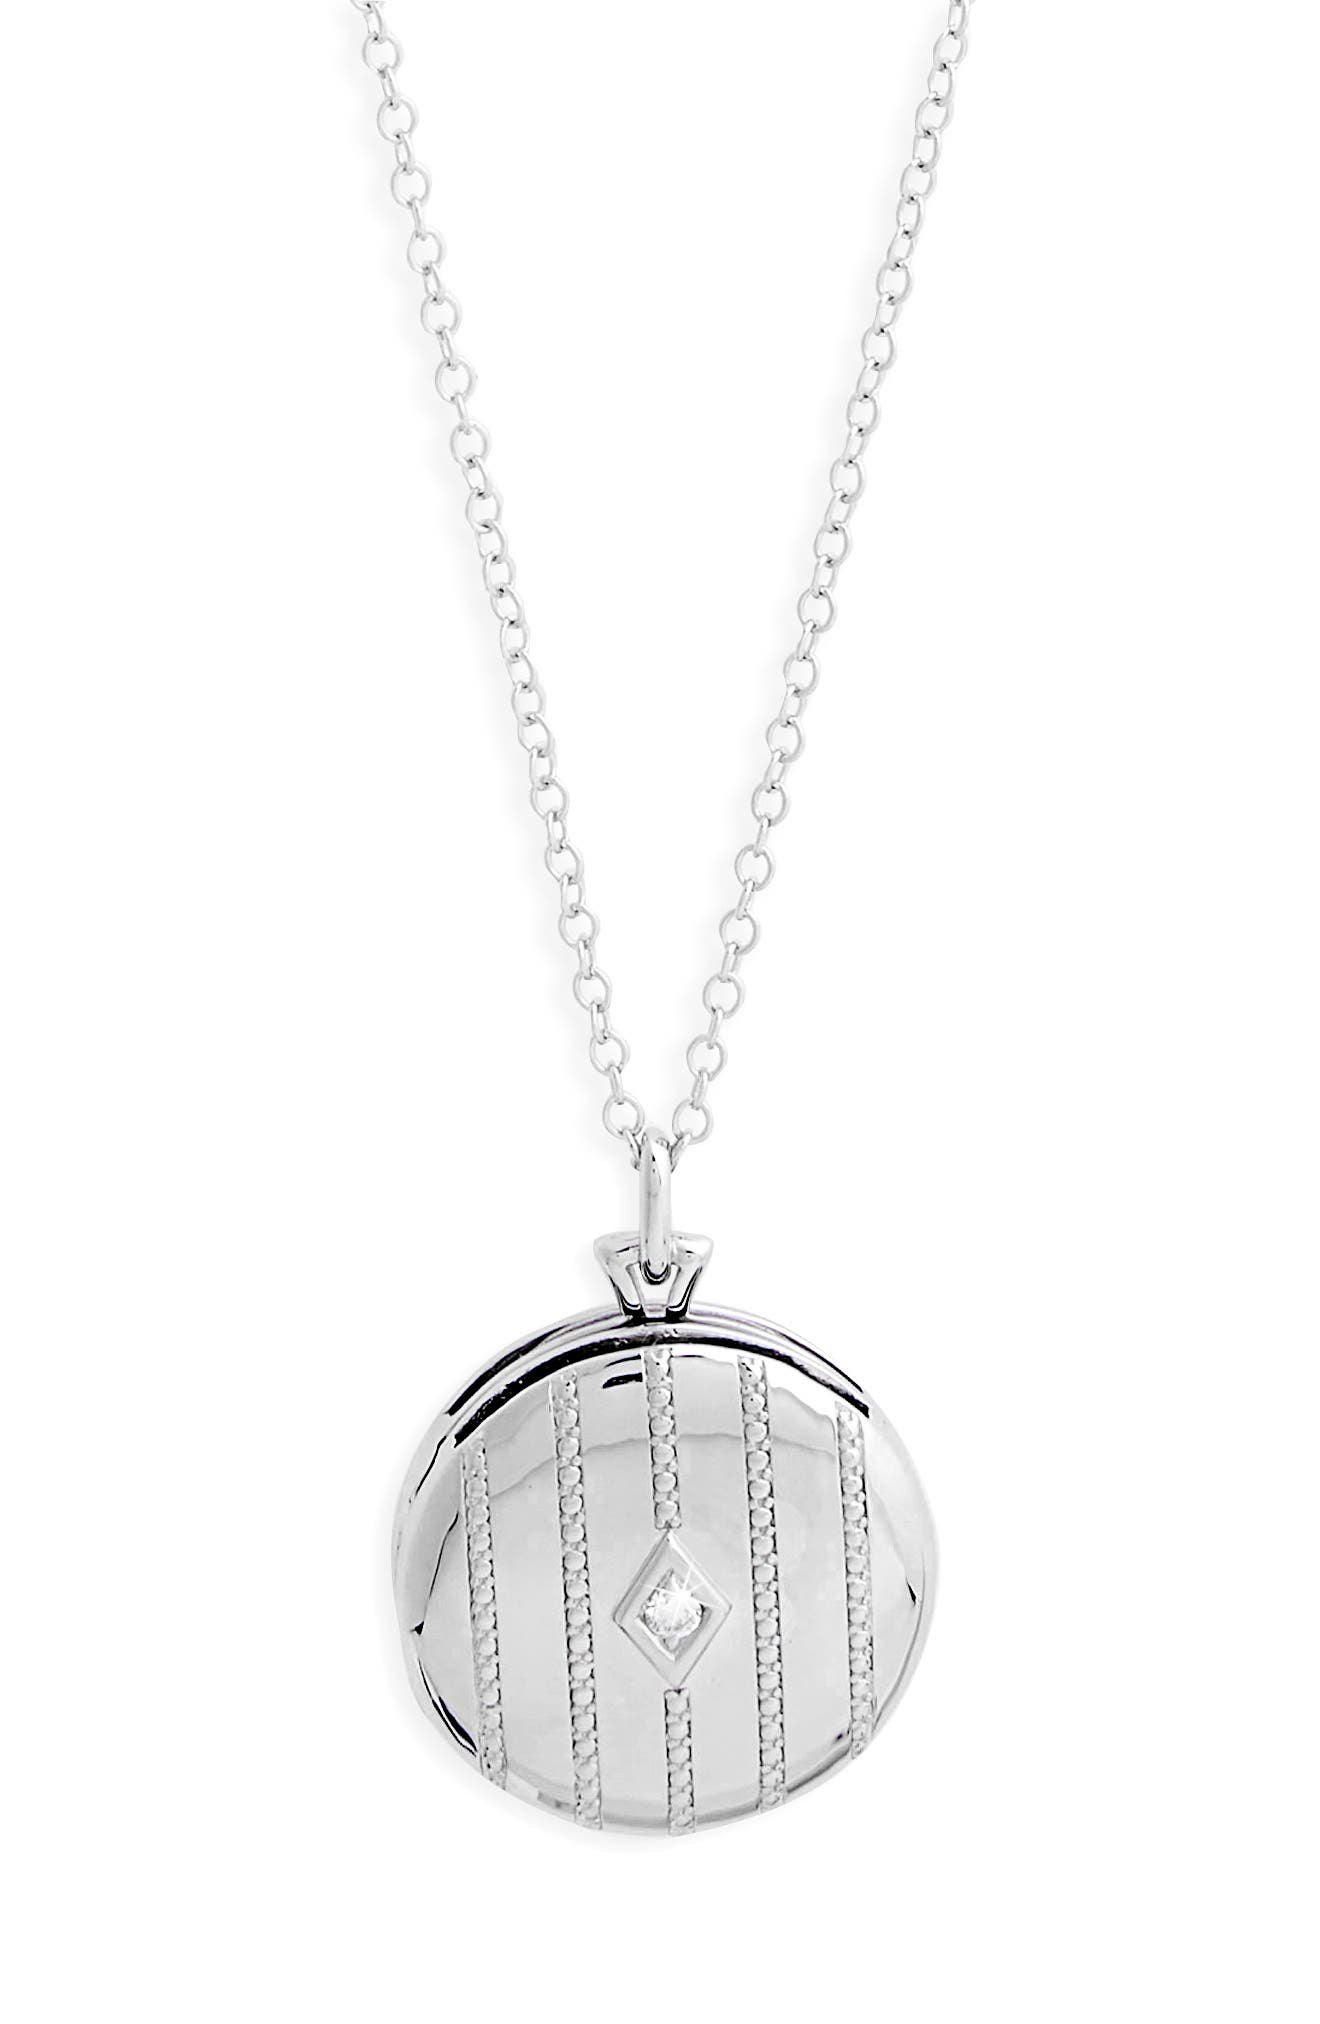 Center Diamond Locket Necklace,                             Alternate thumbnail 2, color,                             STERLING SILVER